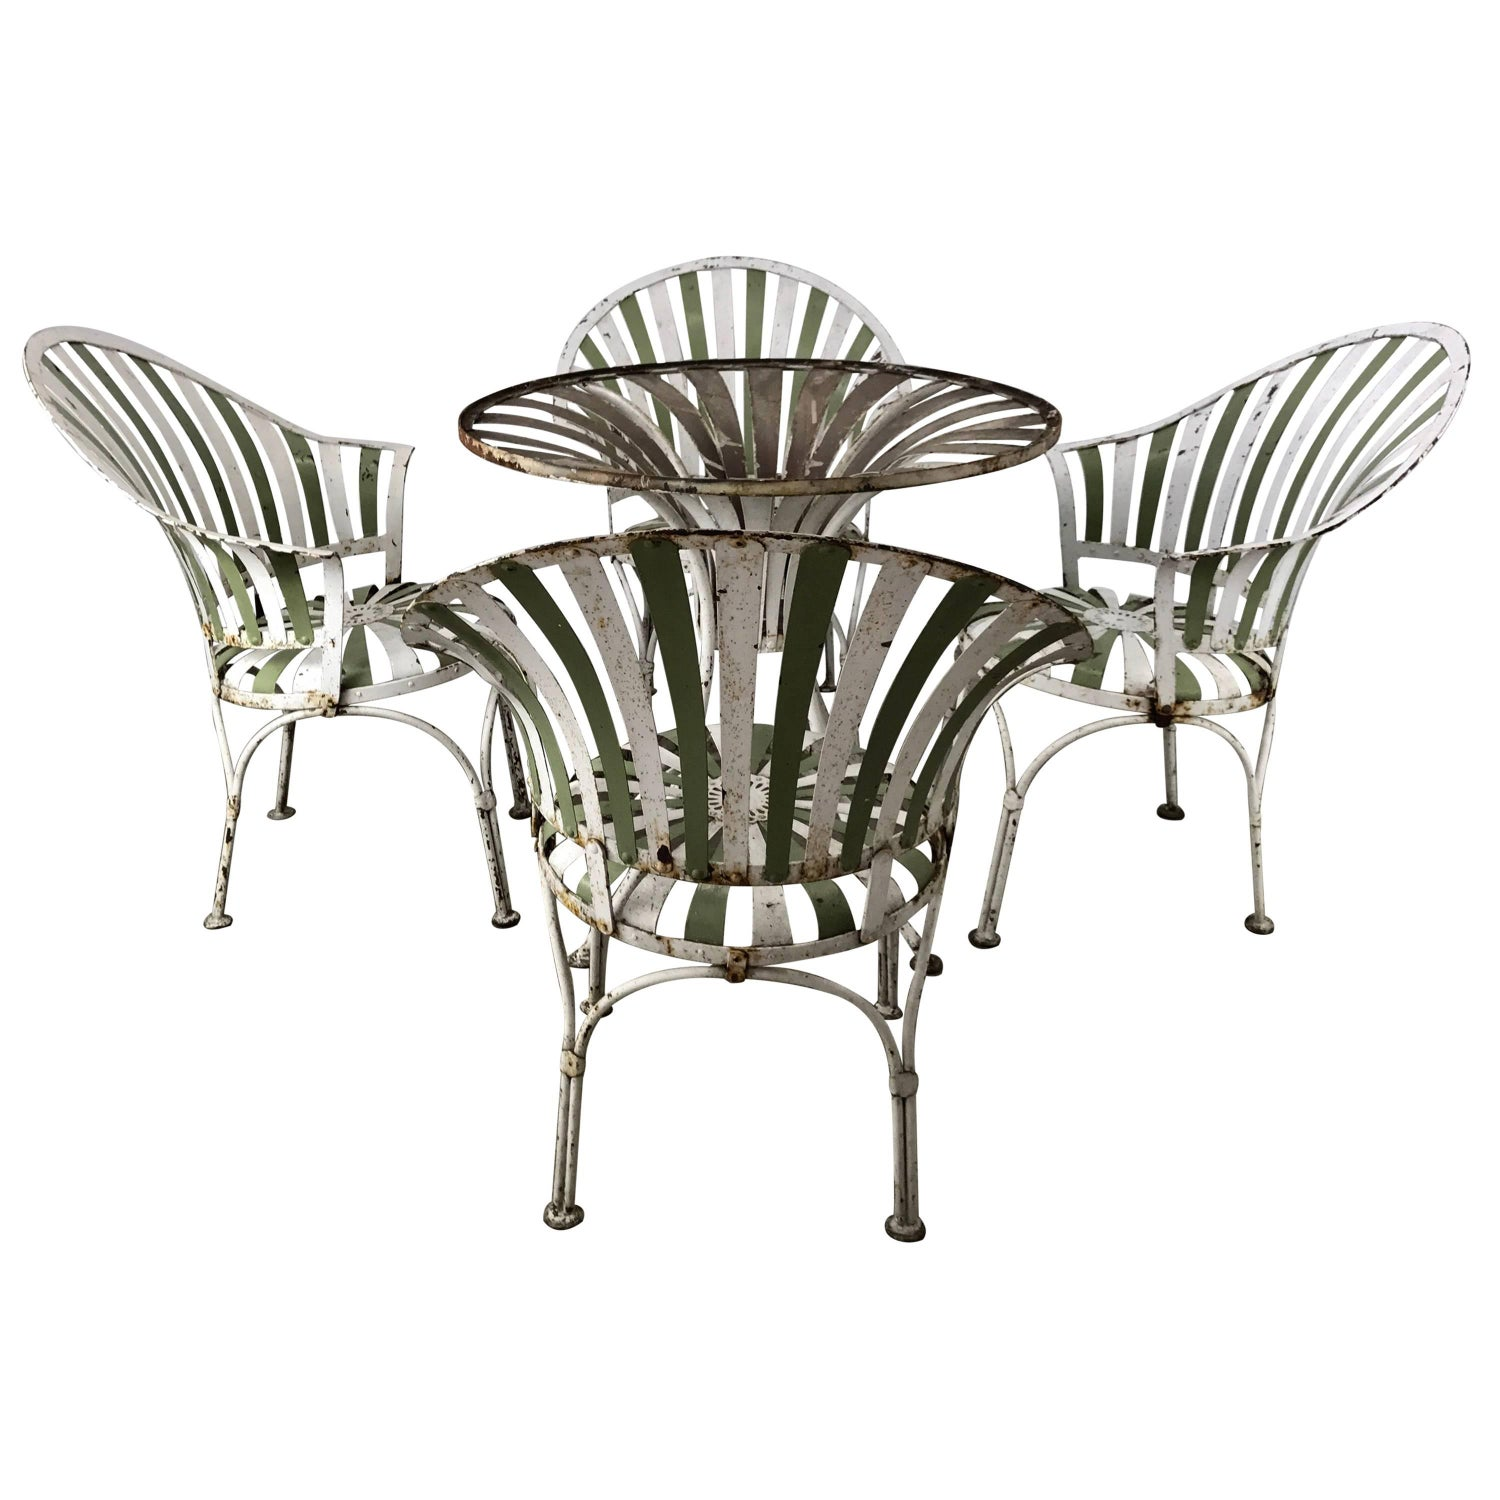 Set of Green Wrought Iron Scroll Back Garden Chairs For Sale at